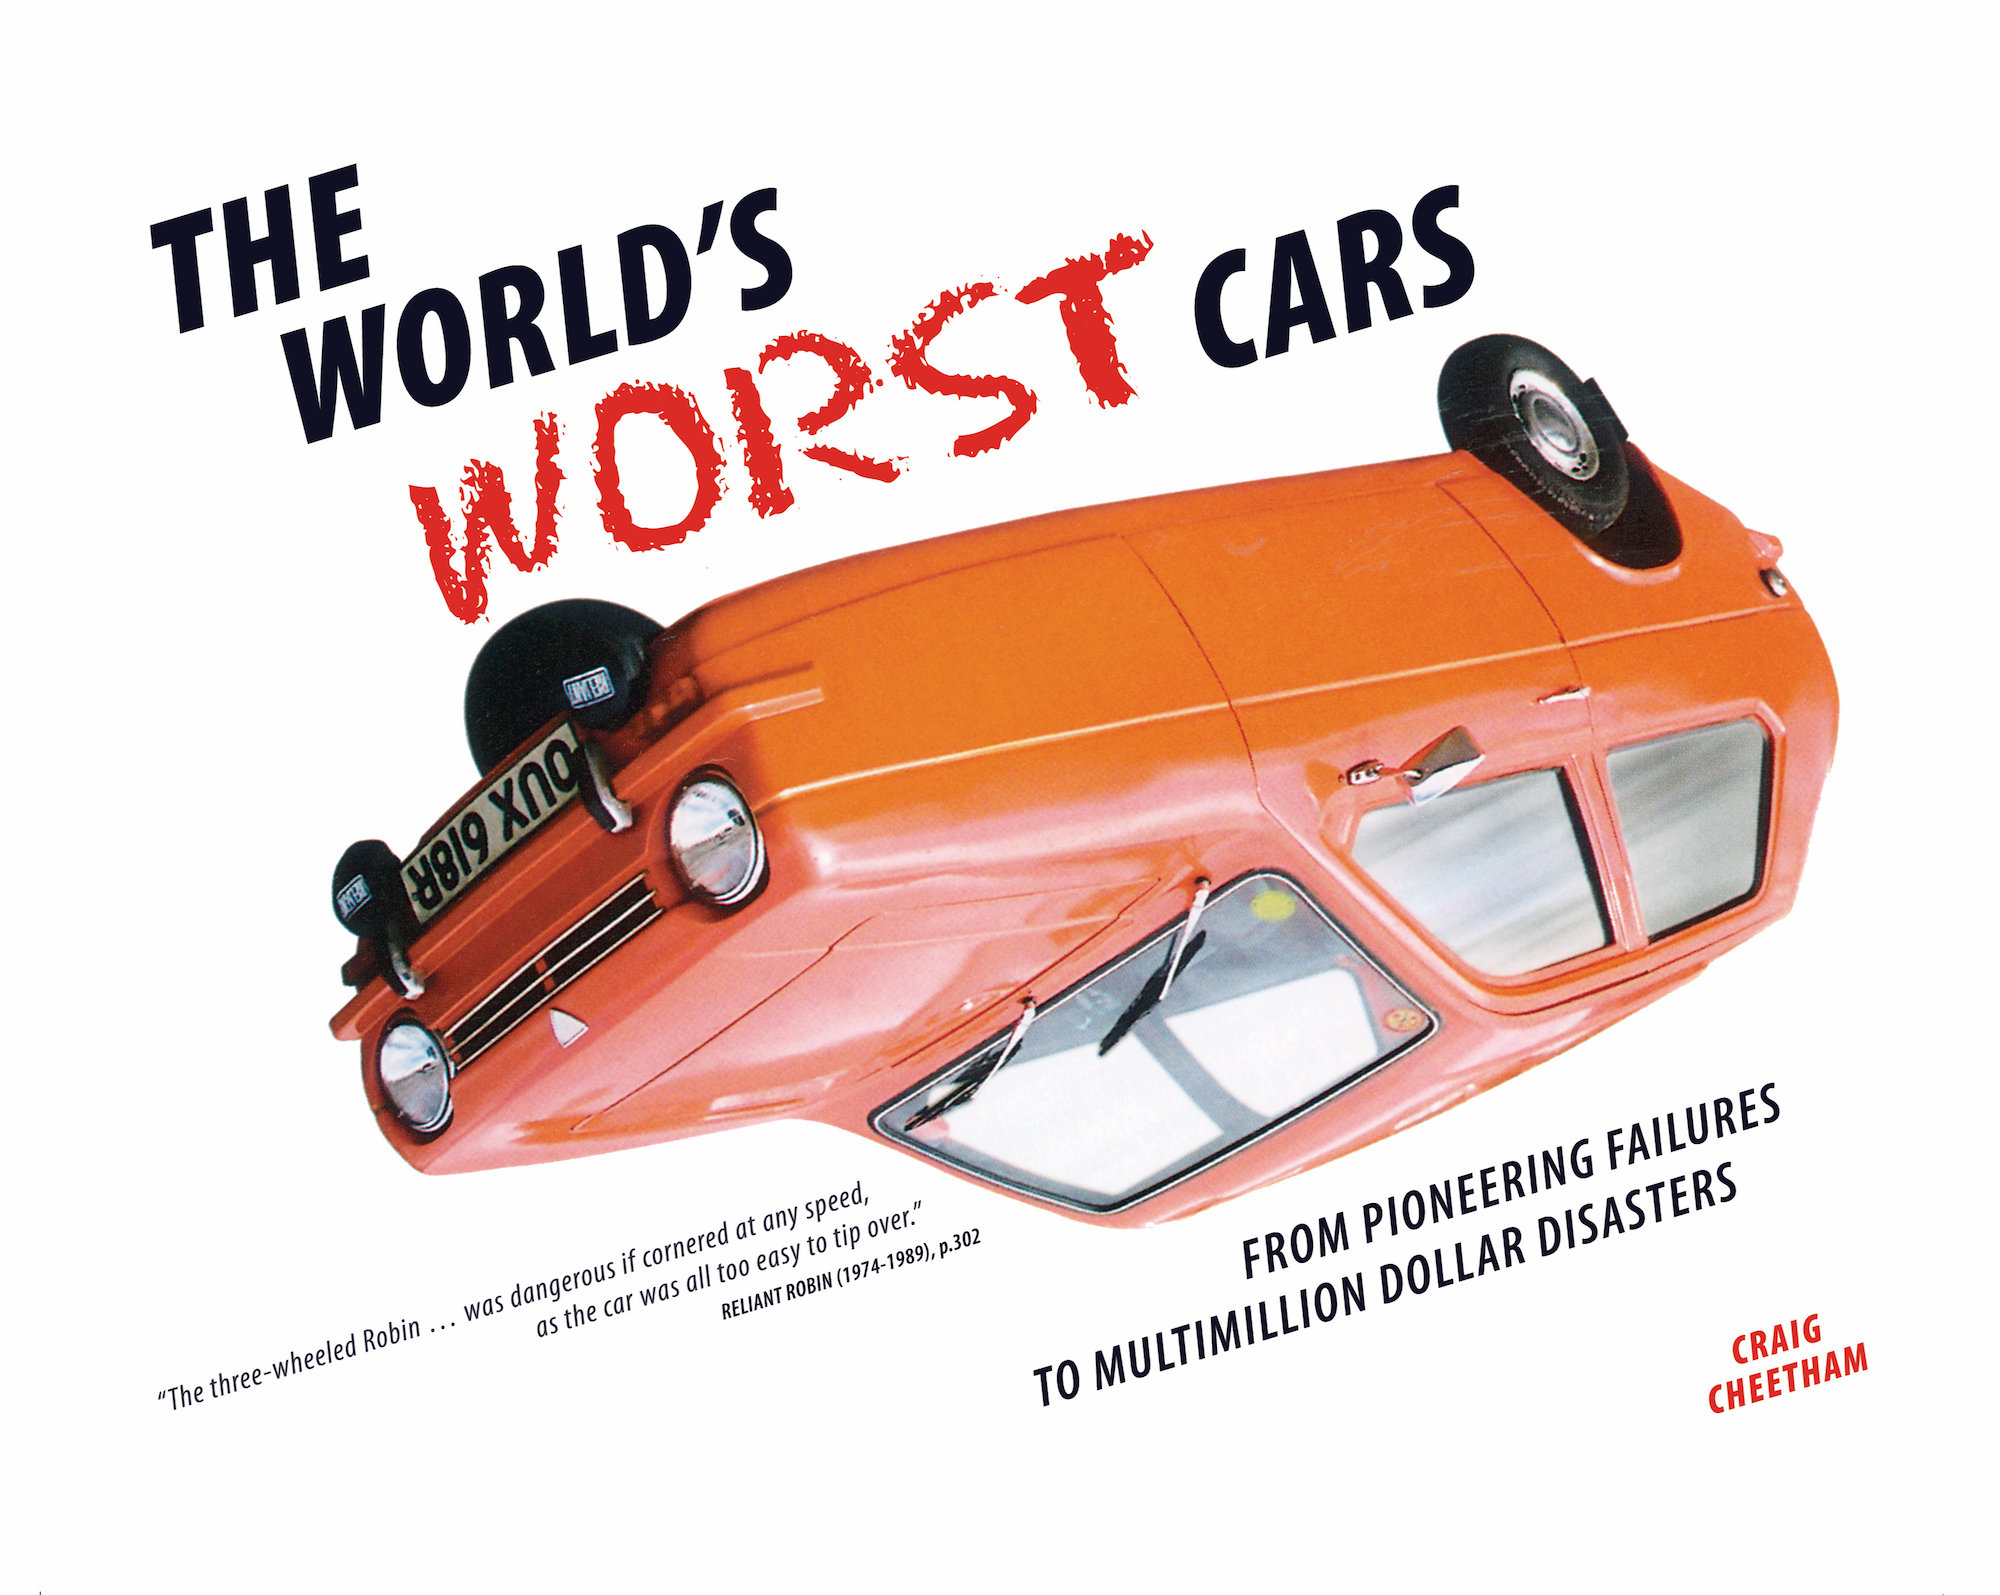 The World's Worst Cars [Large format]